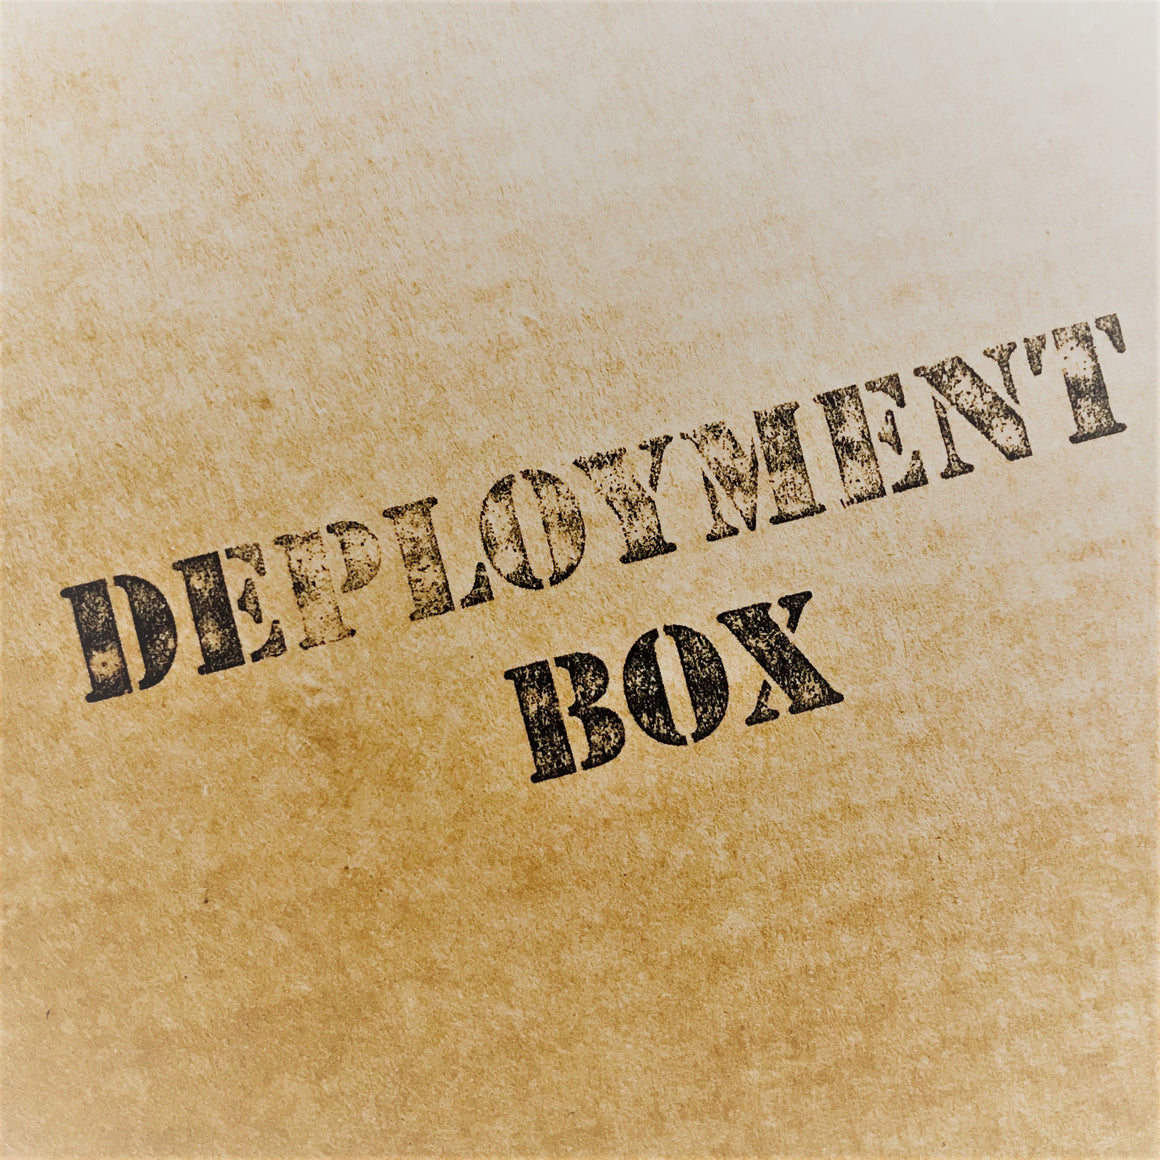 The Deployment Box